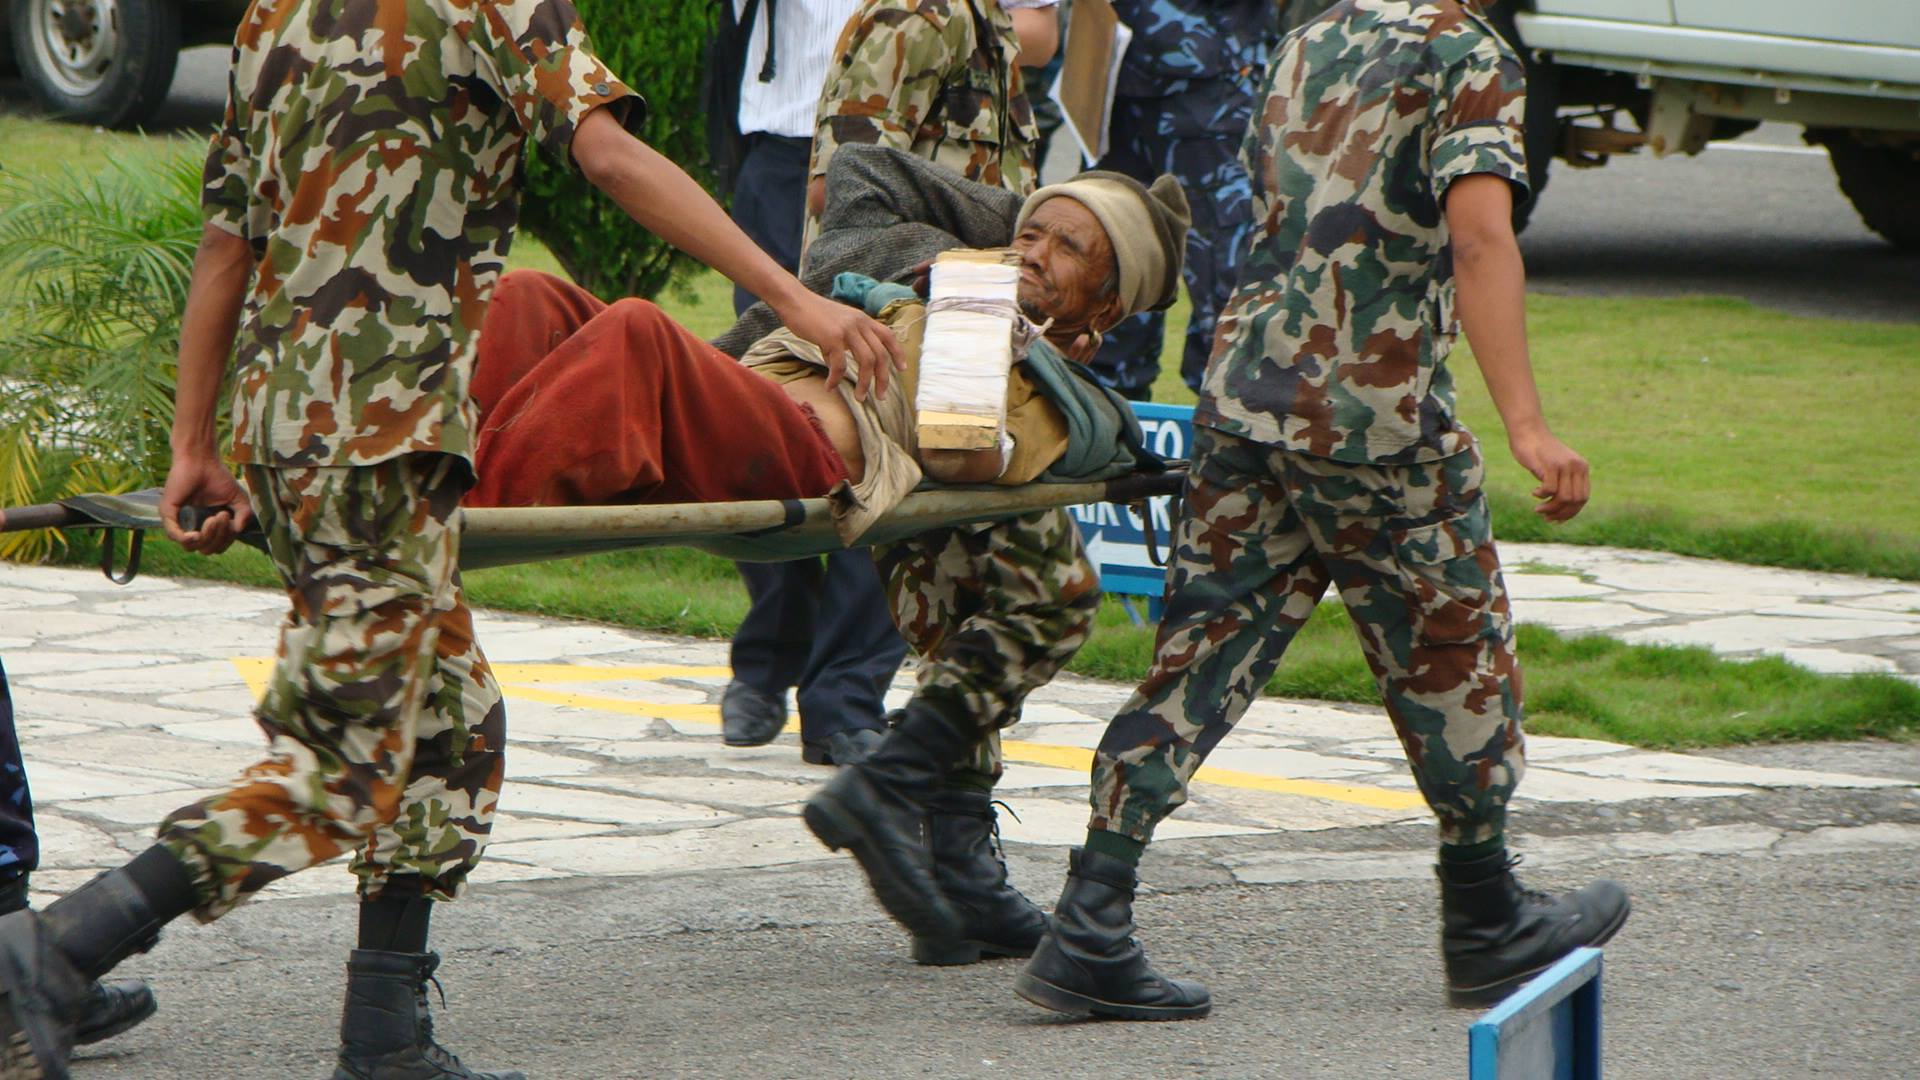 News and photos from Nepal